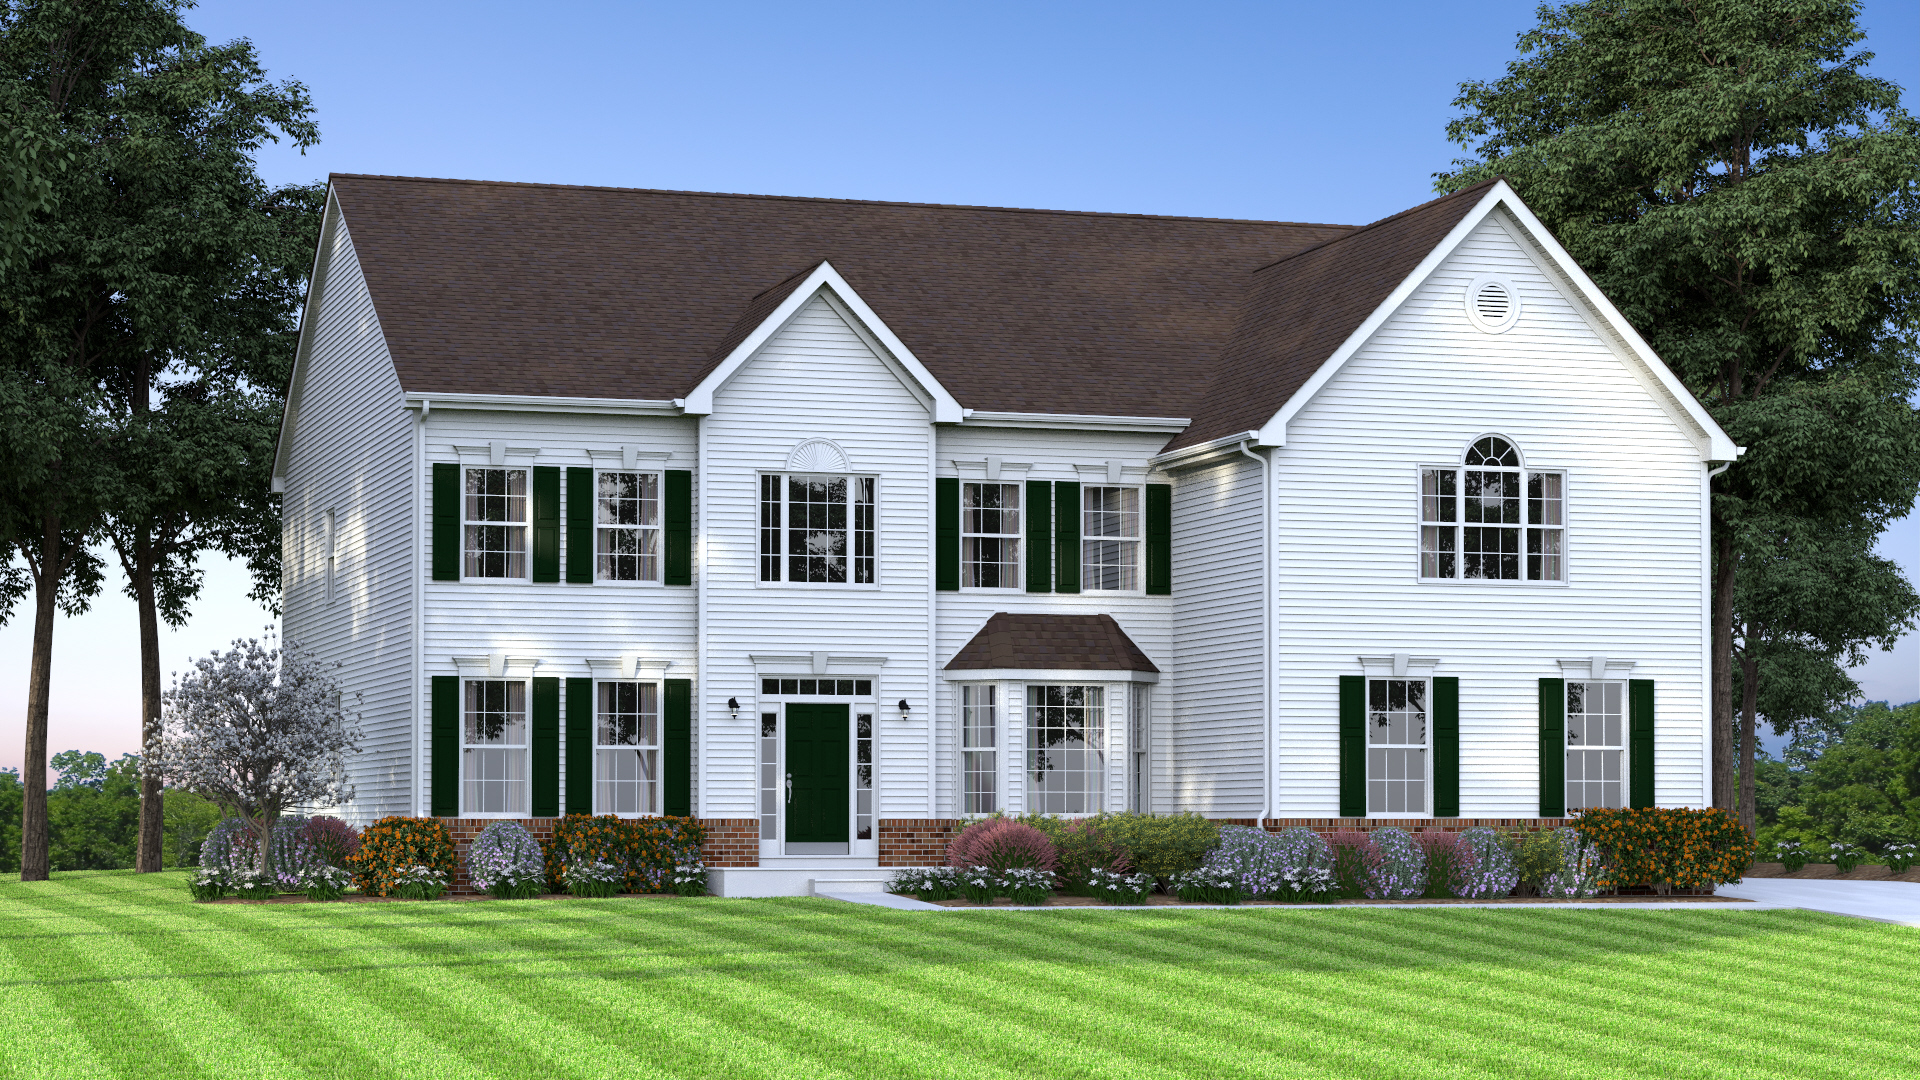 The Century  4,200 sf / 4 br / 2.5 ba / 2 car garage Starting at $497,990